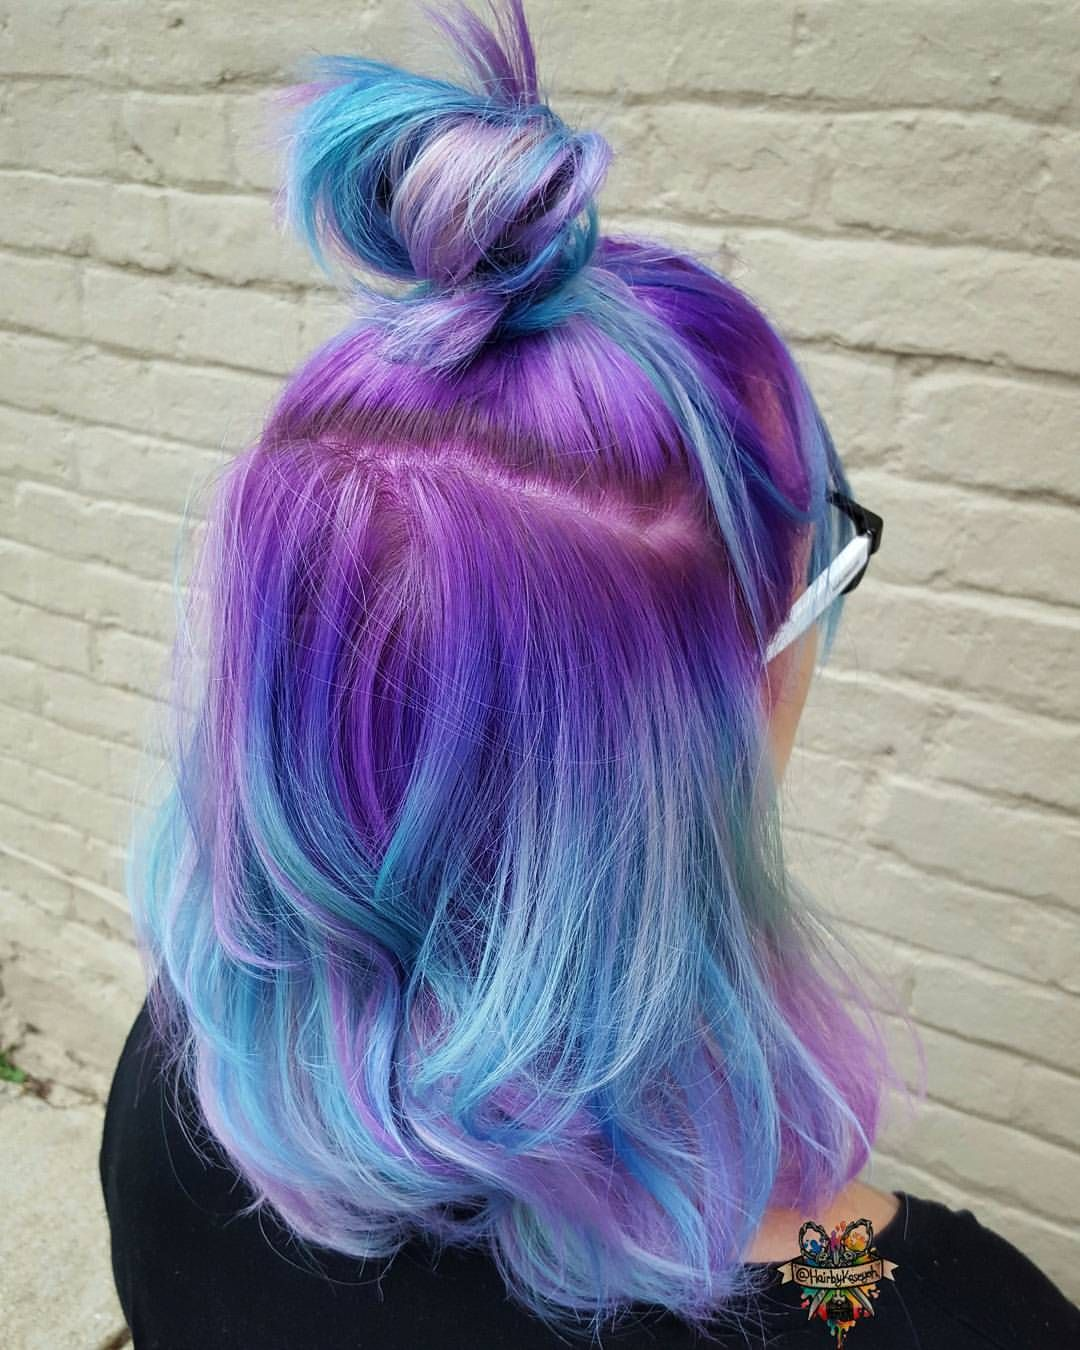 Lila Blaue Haare Purple Blue Ombré Hair Instagram Photo By Hairbykaseyoh